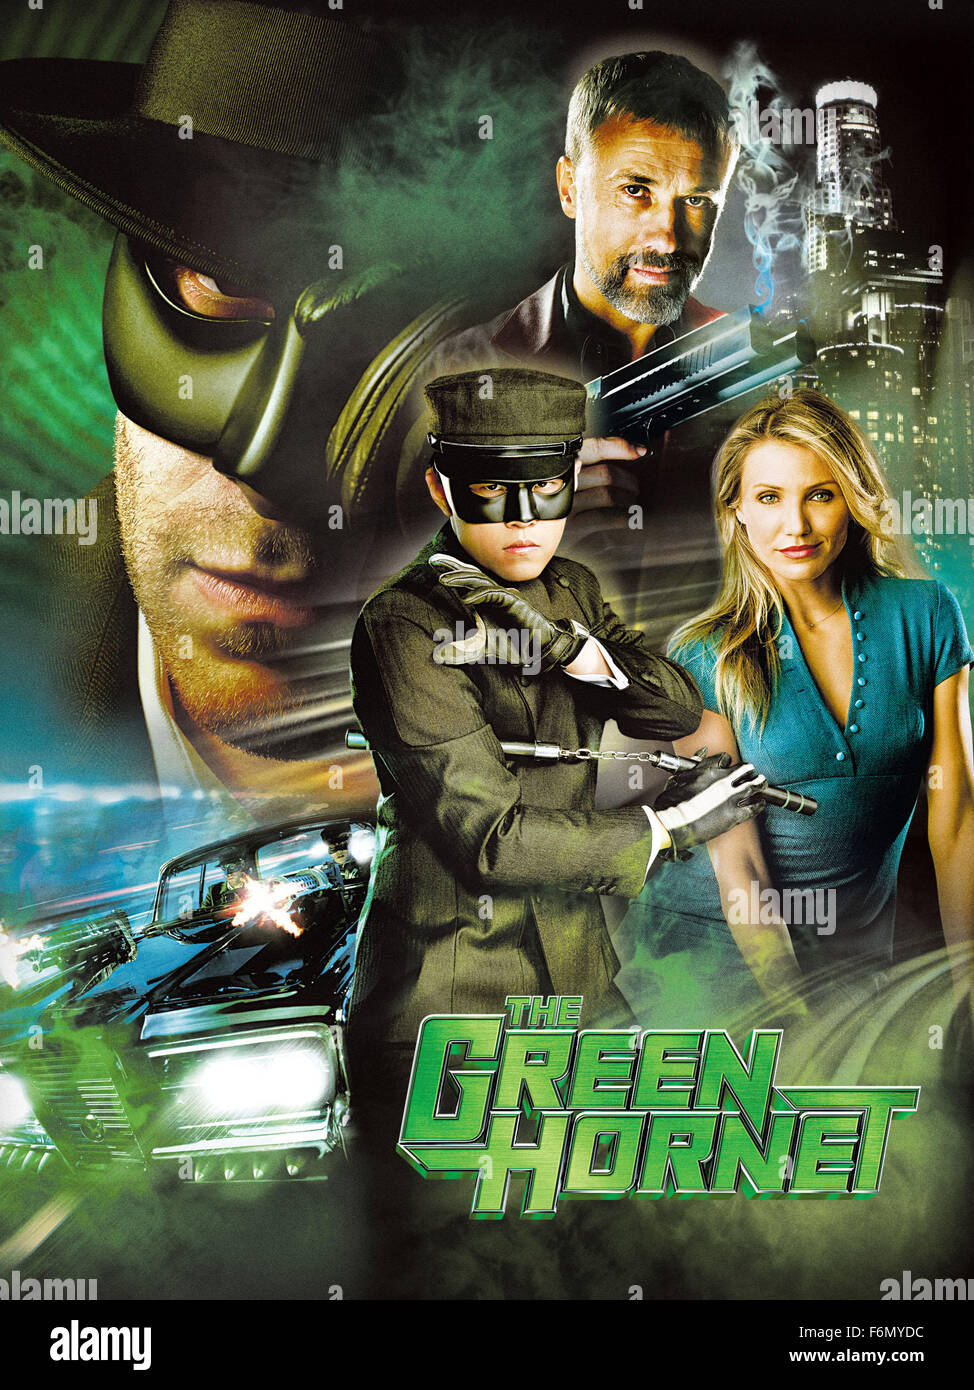 RELEASE DATE: January 14, 2011 MOVIE TITLE: The Green Hornet